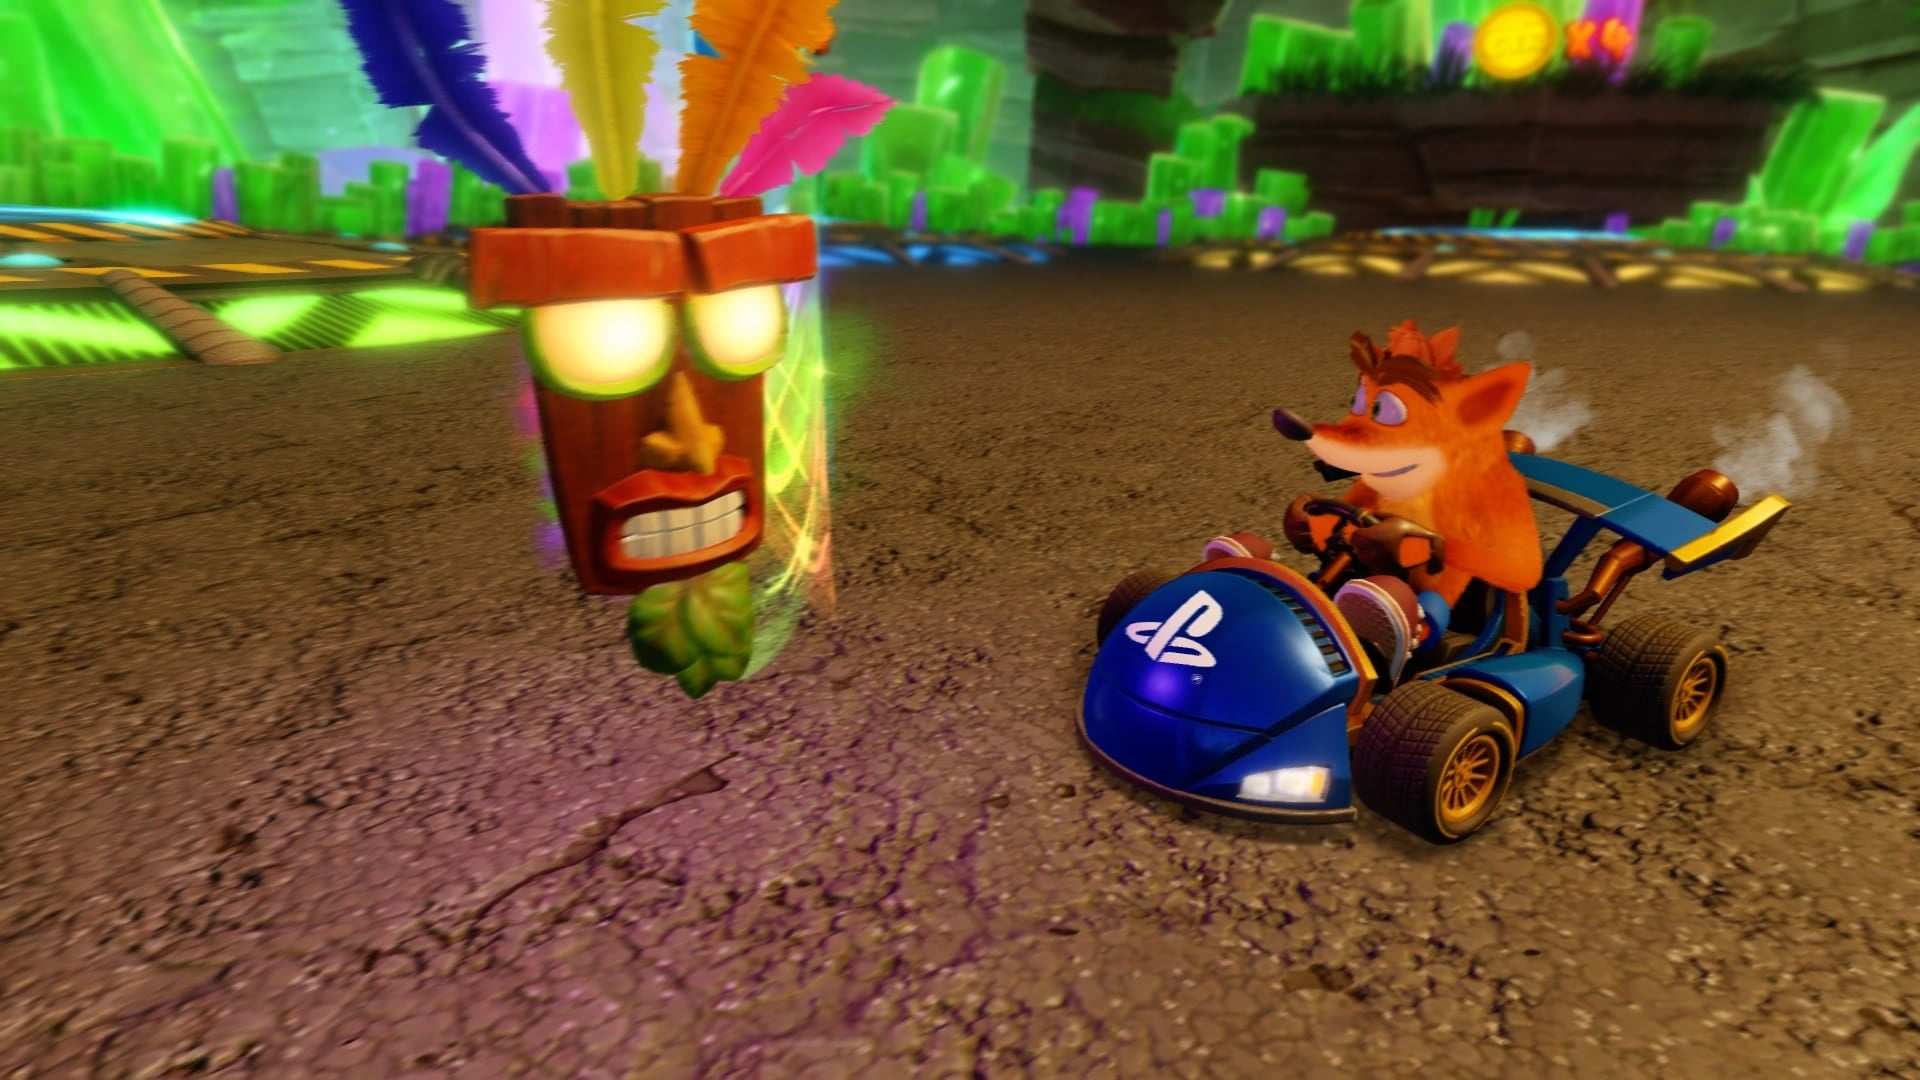 Crash Team Racing Nitro Fueled: 20 Anni Dopo - Recensione 2 - Hynerd.it